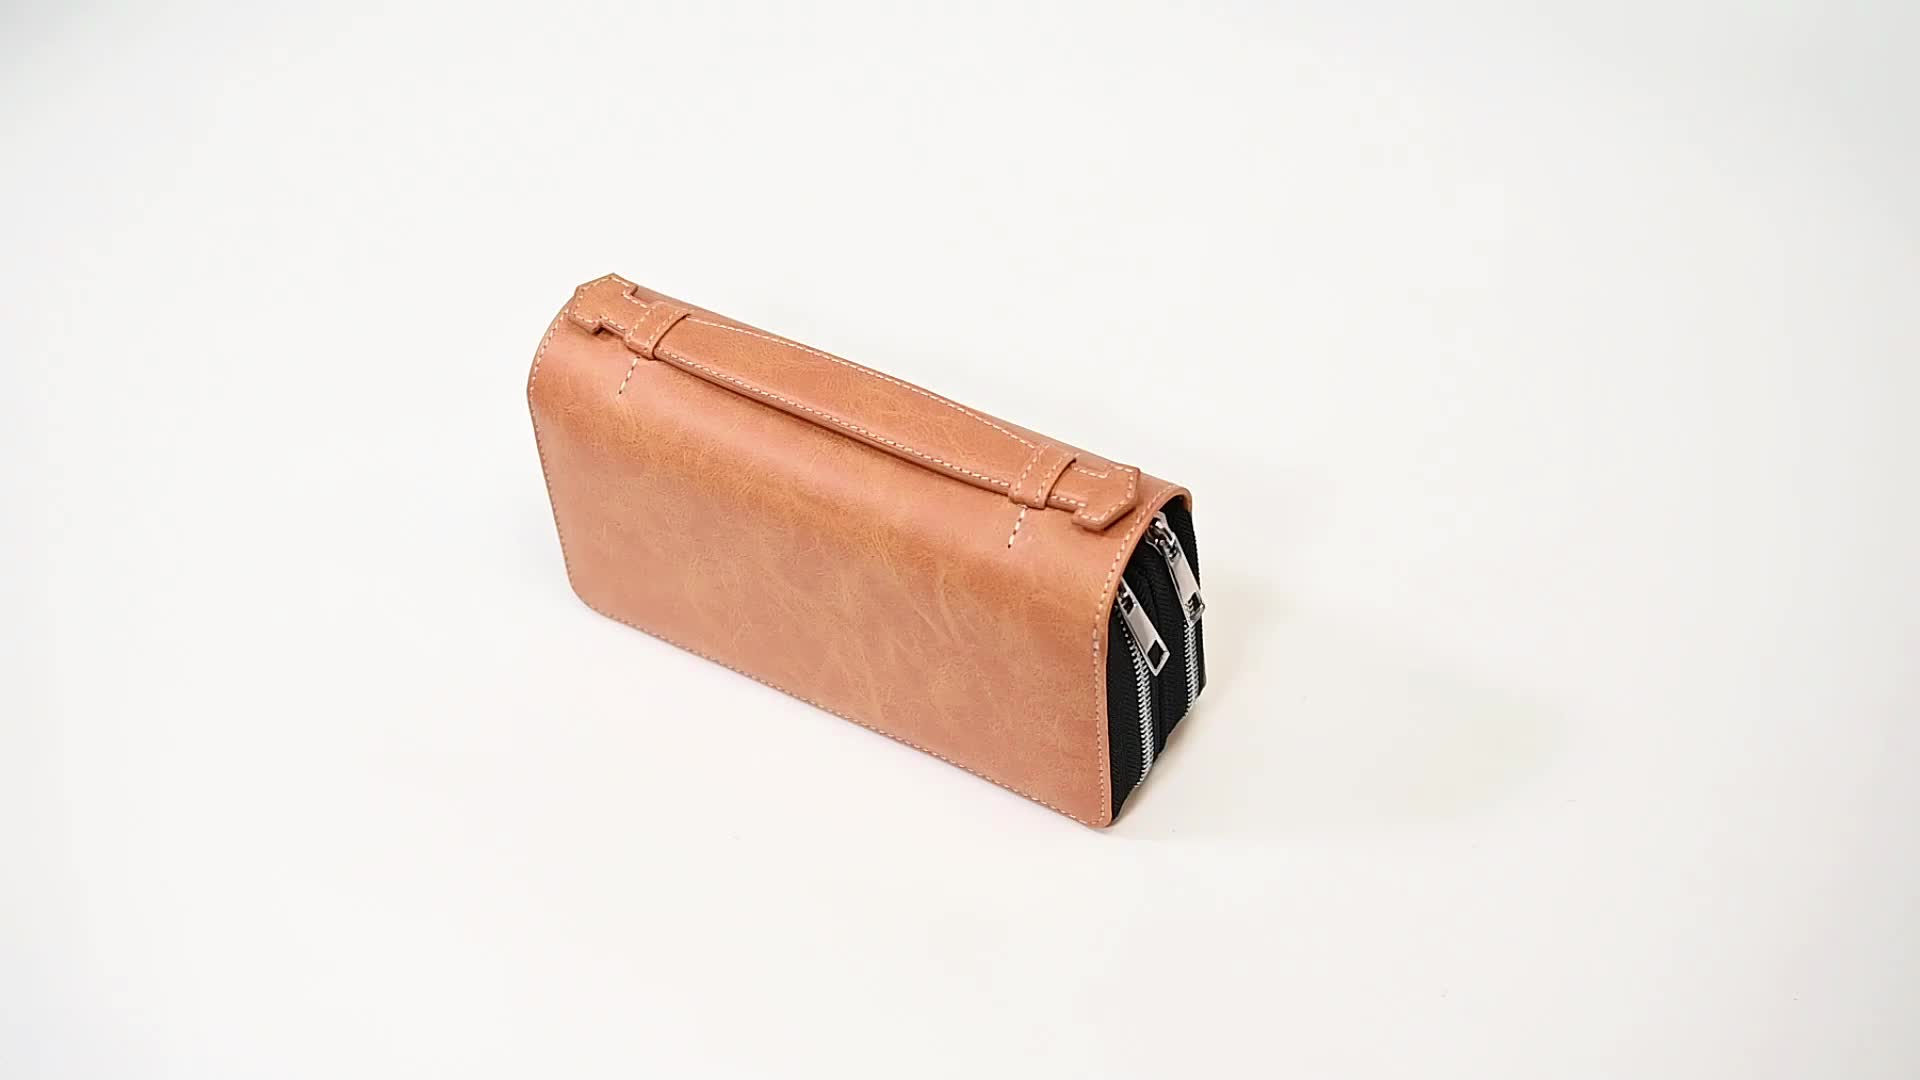 New Design Portable Large Capacity Power Bank Leather Wallet